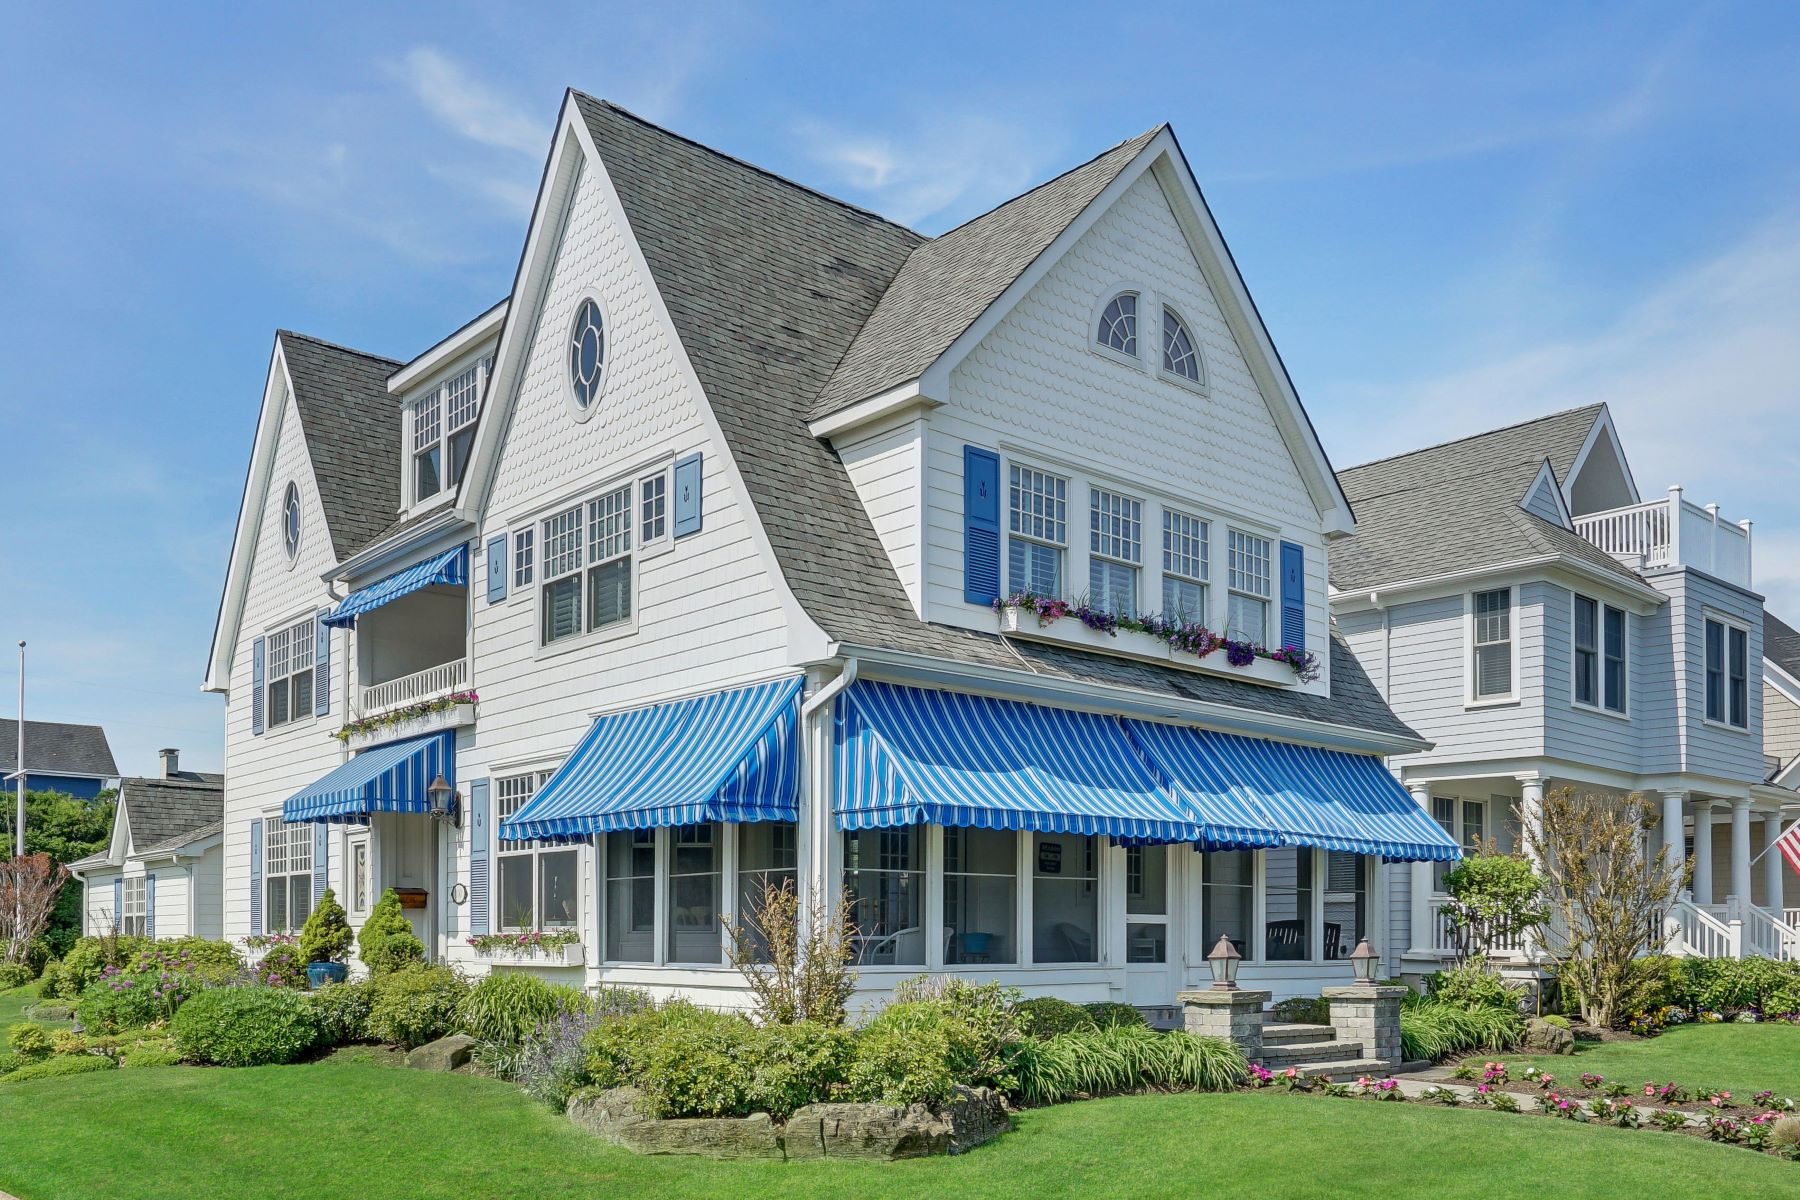 Single Family Homes for Sale at Seashore Colonial 100 Chicago Boulevard Sea Girt, New Jersey 08750 United States